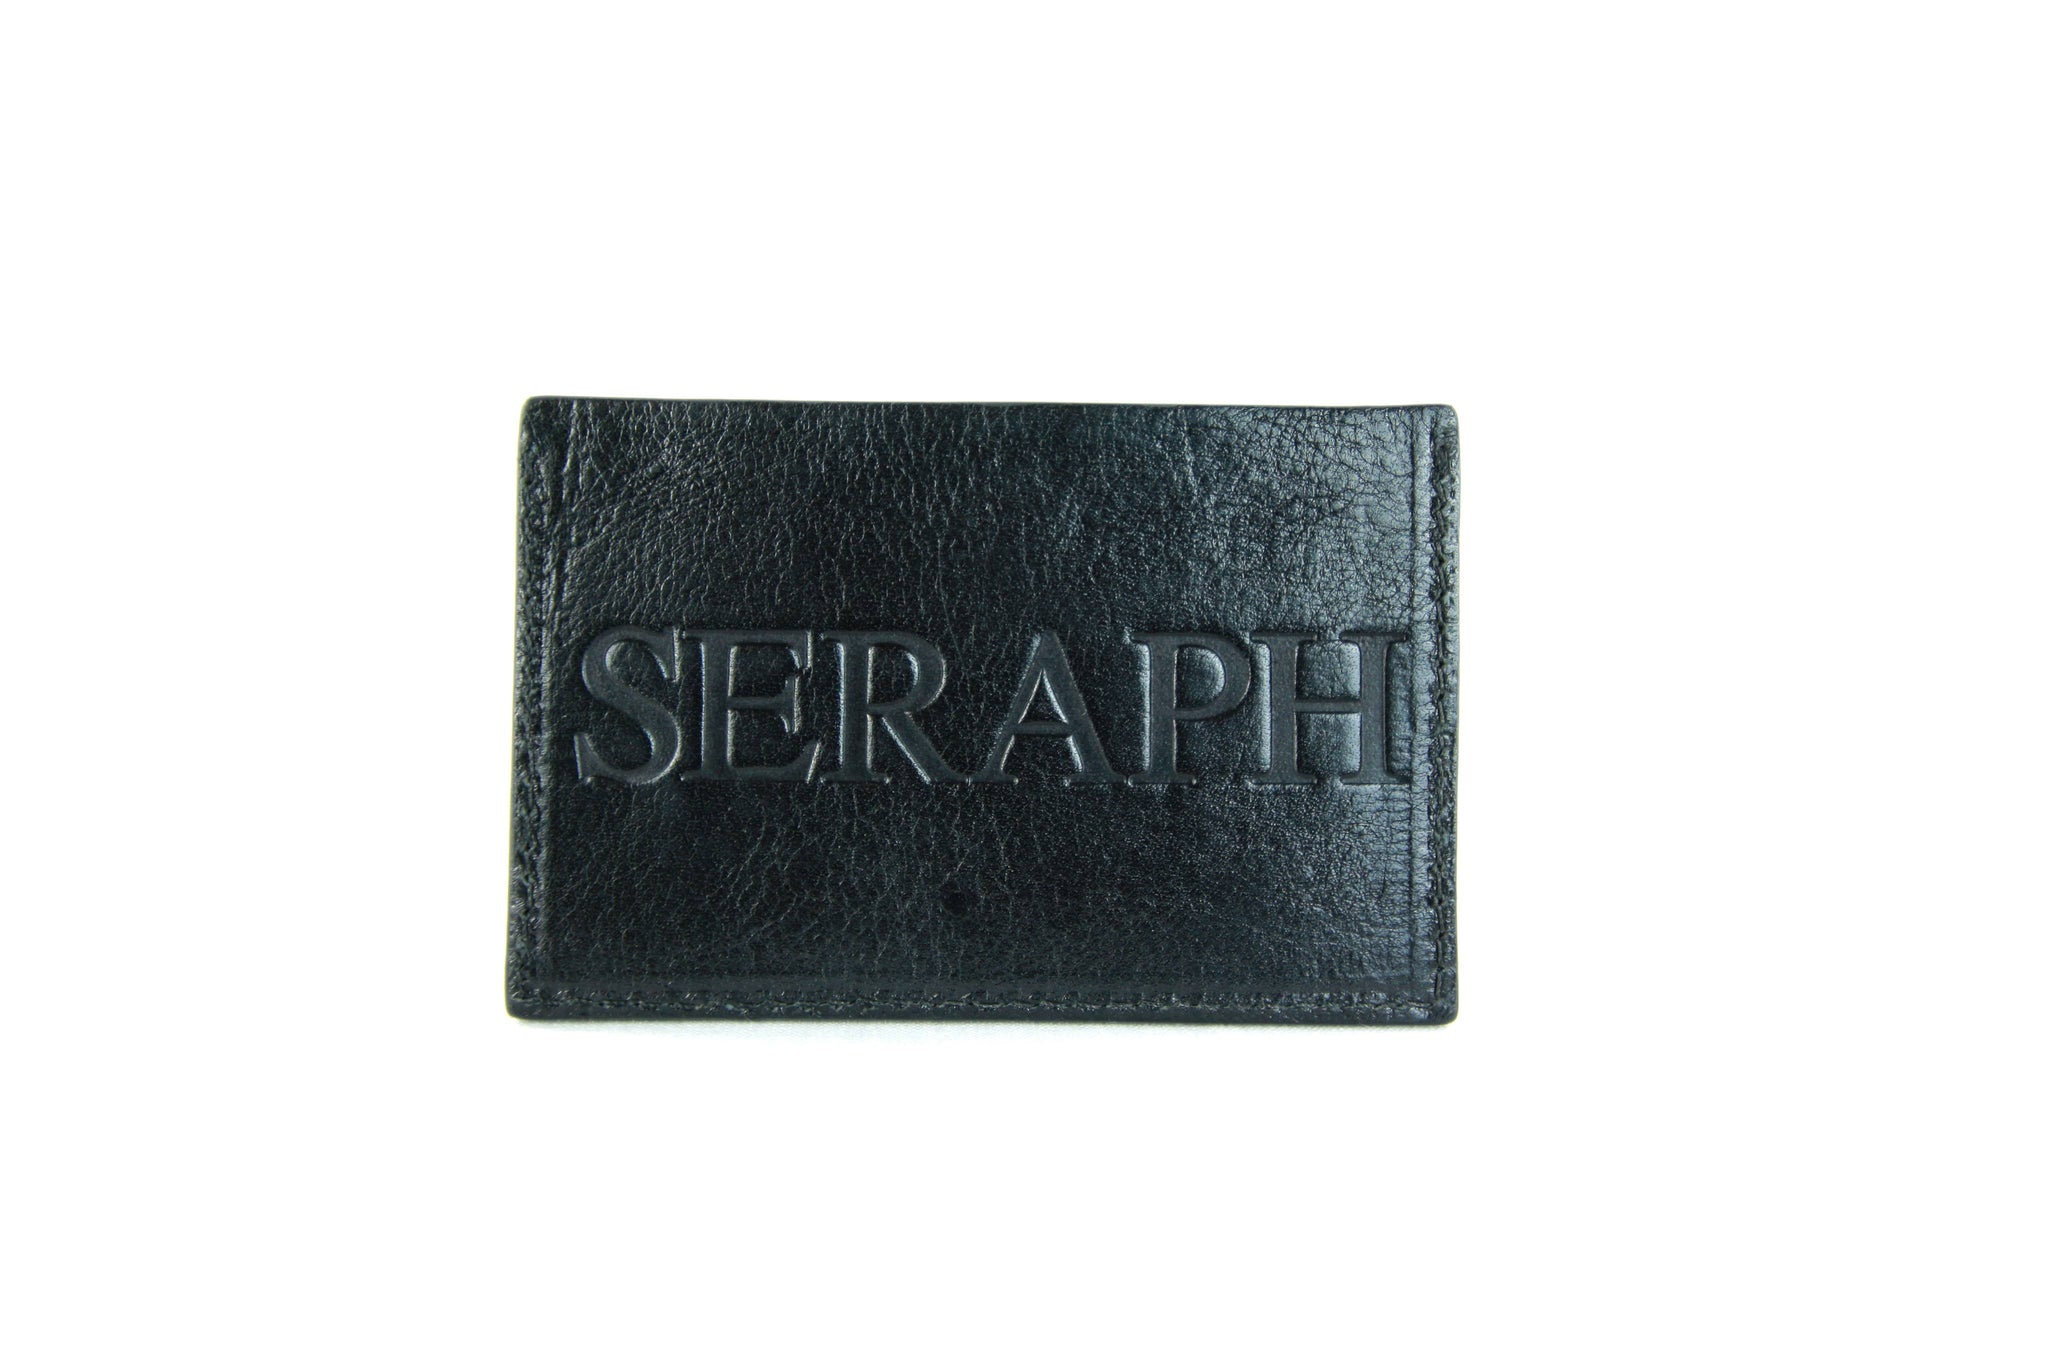 Wallet, Emblem Emboss, Black Italian leather